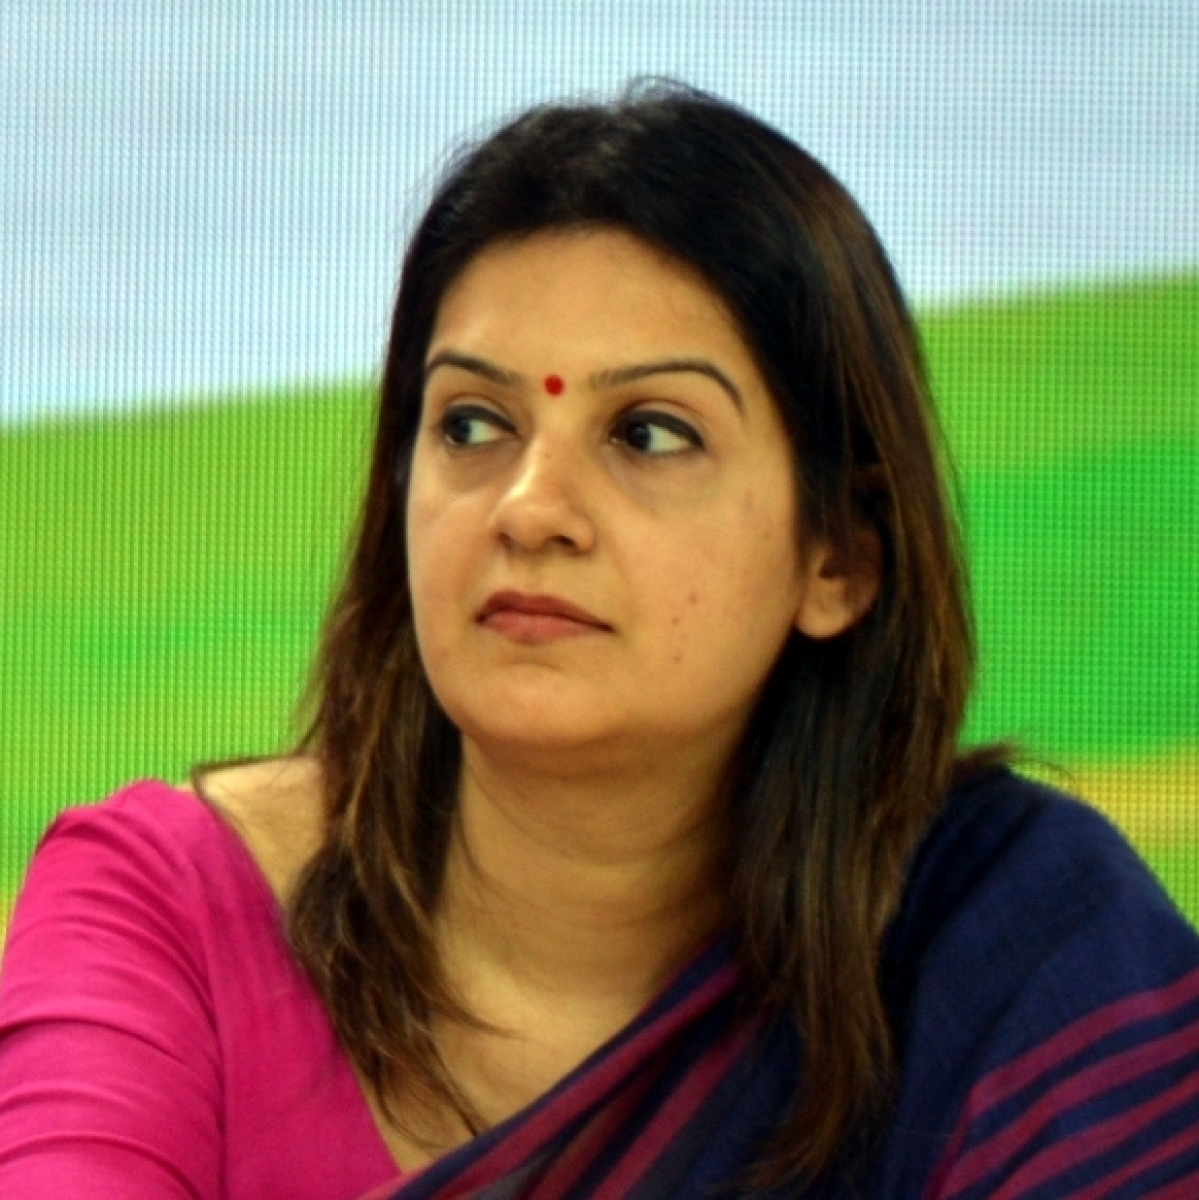 Priyanka Chaturvedi slams media house for creating controversy over Uddhav Thackeray's black mask during visit to Raj Bhavan